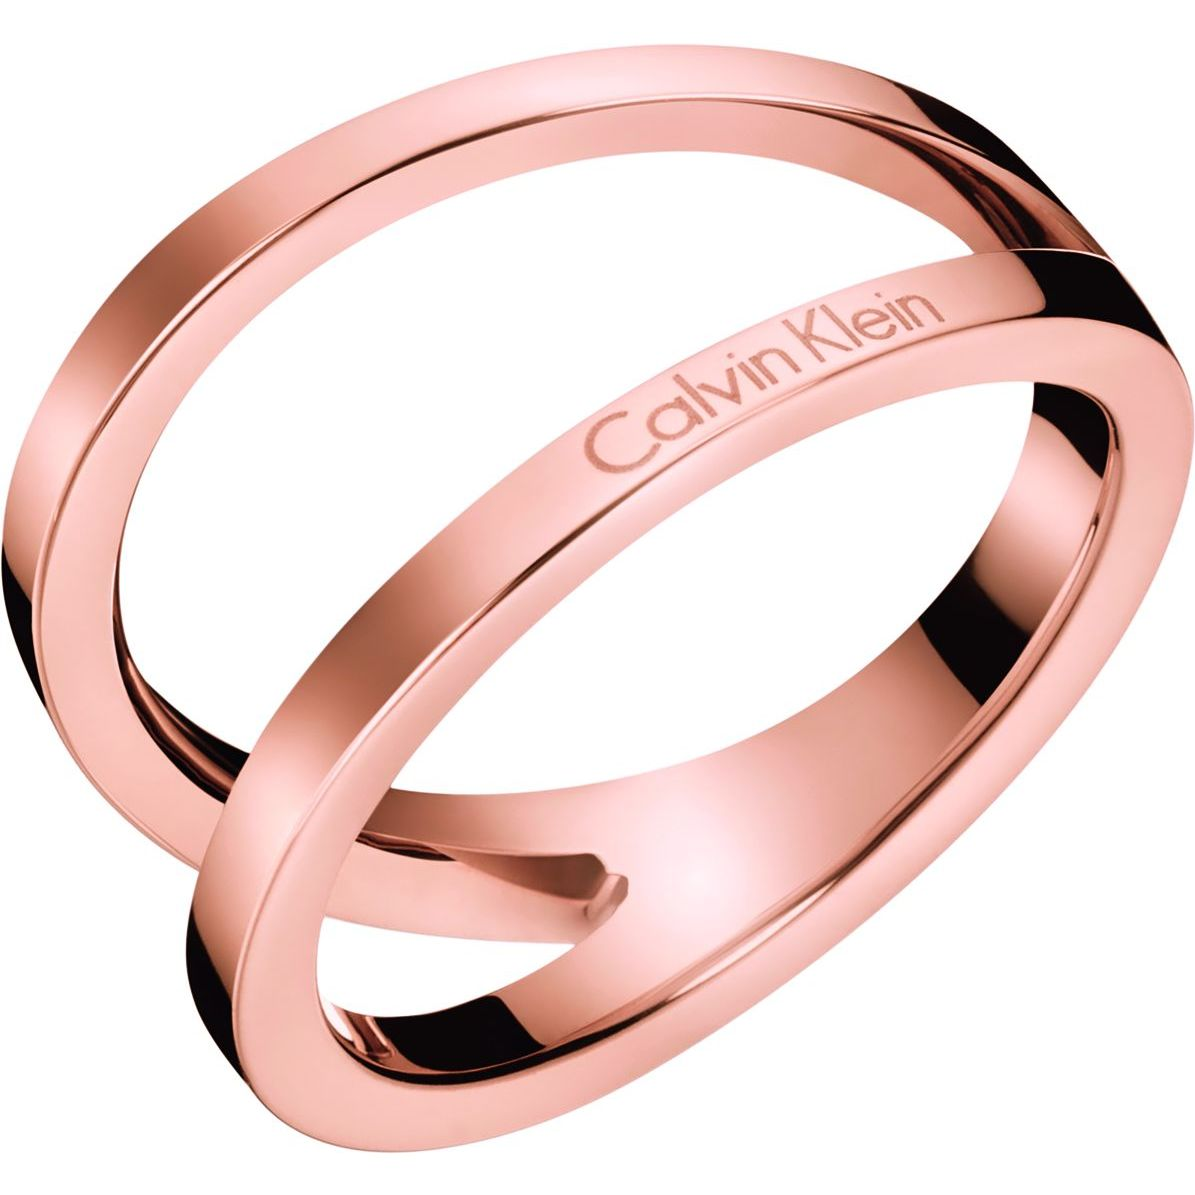 Ladies Calvin Klein Jewellery Rose Gold Plated Outline Ring ...